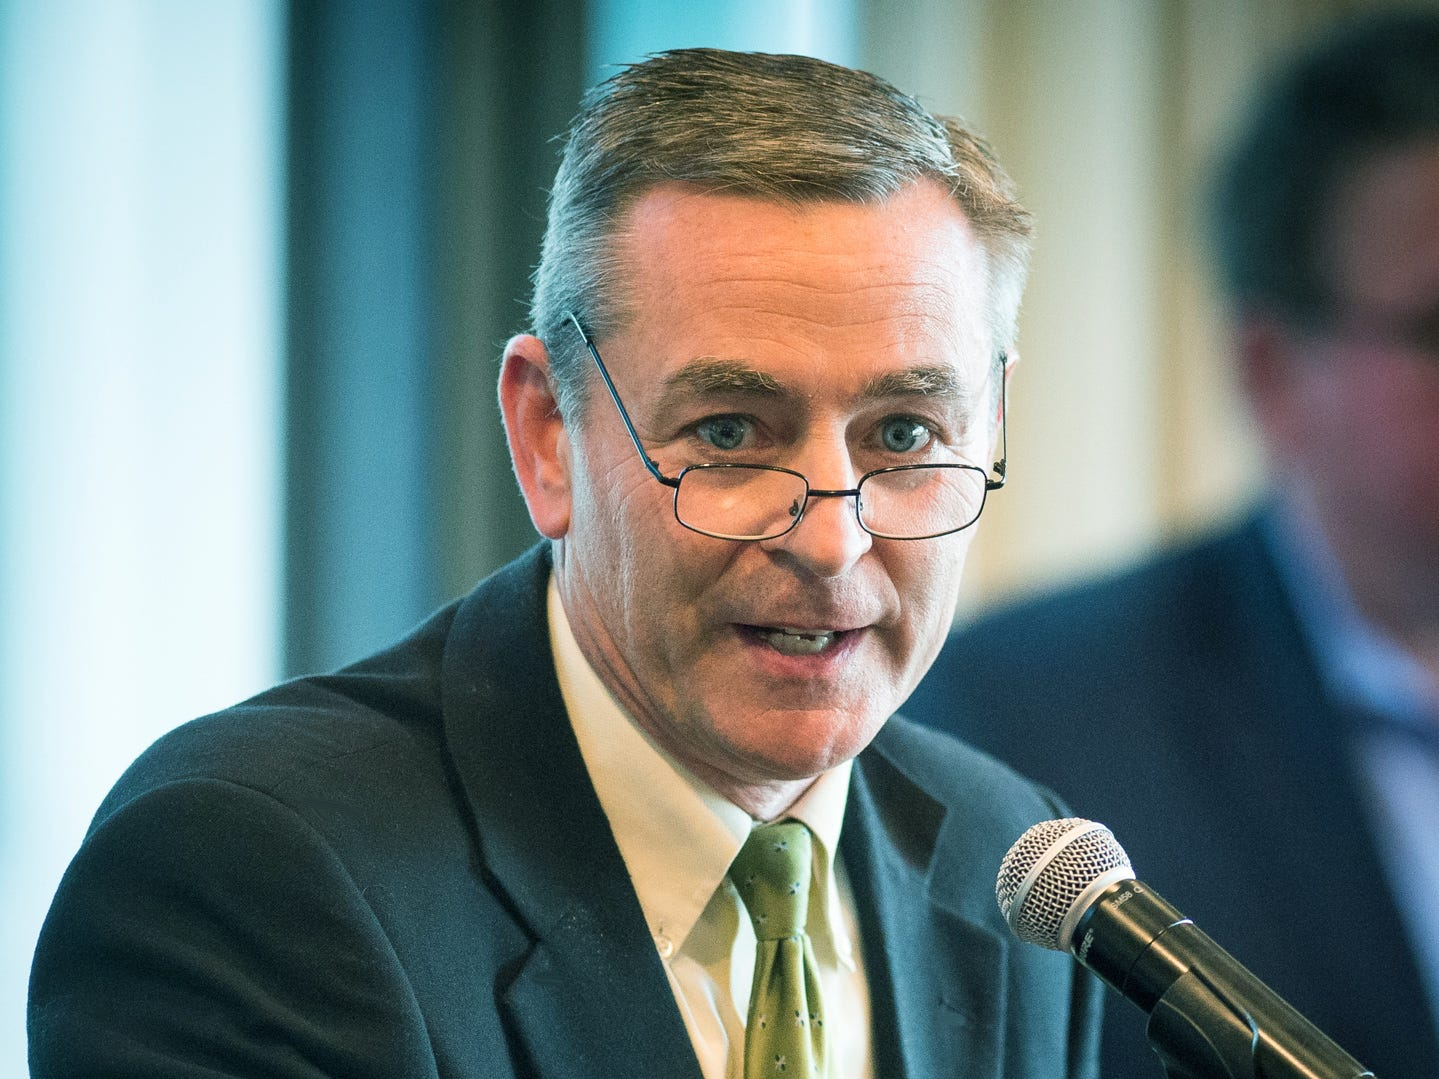 Rep. Glen Casada, R-Franklin, speaks before the House Republican Caucus vote on leadership positions at the Nashville City Club on Nov. 17, 2016.